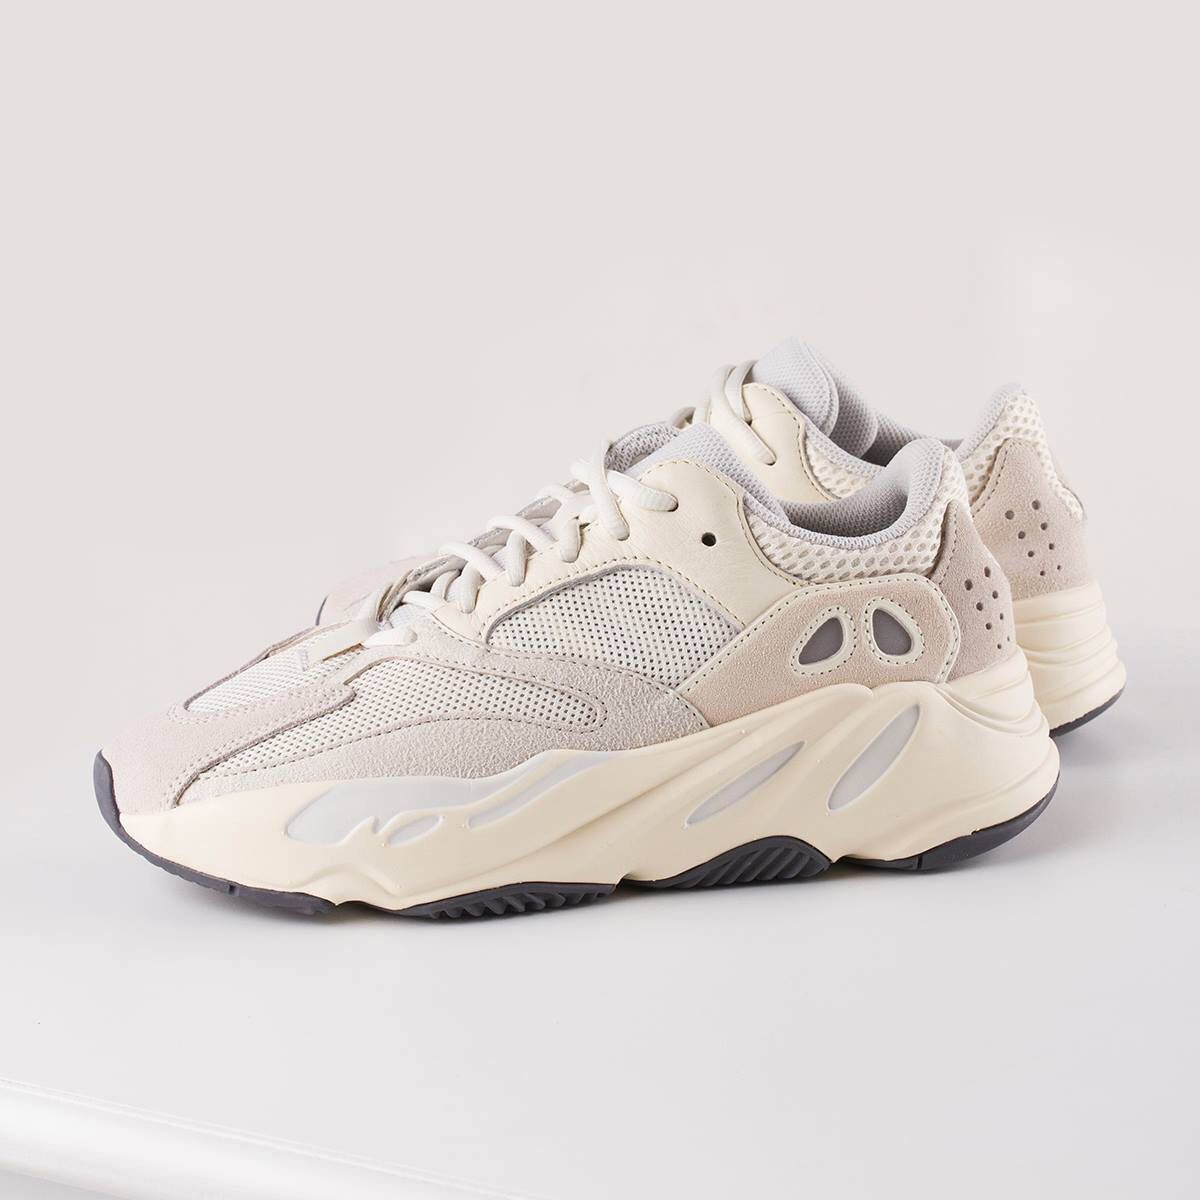 56640d38ee944 Adidas yeezy 700 only $46 in amazon.com and get one free gift ...